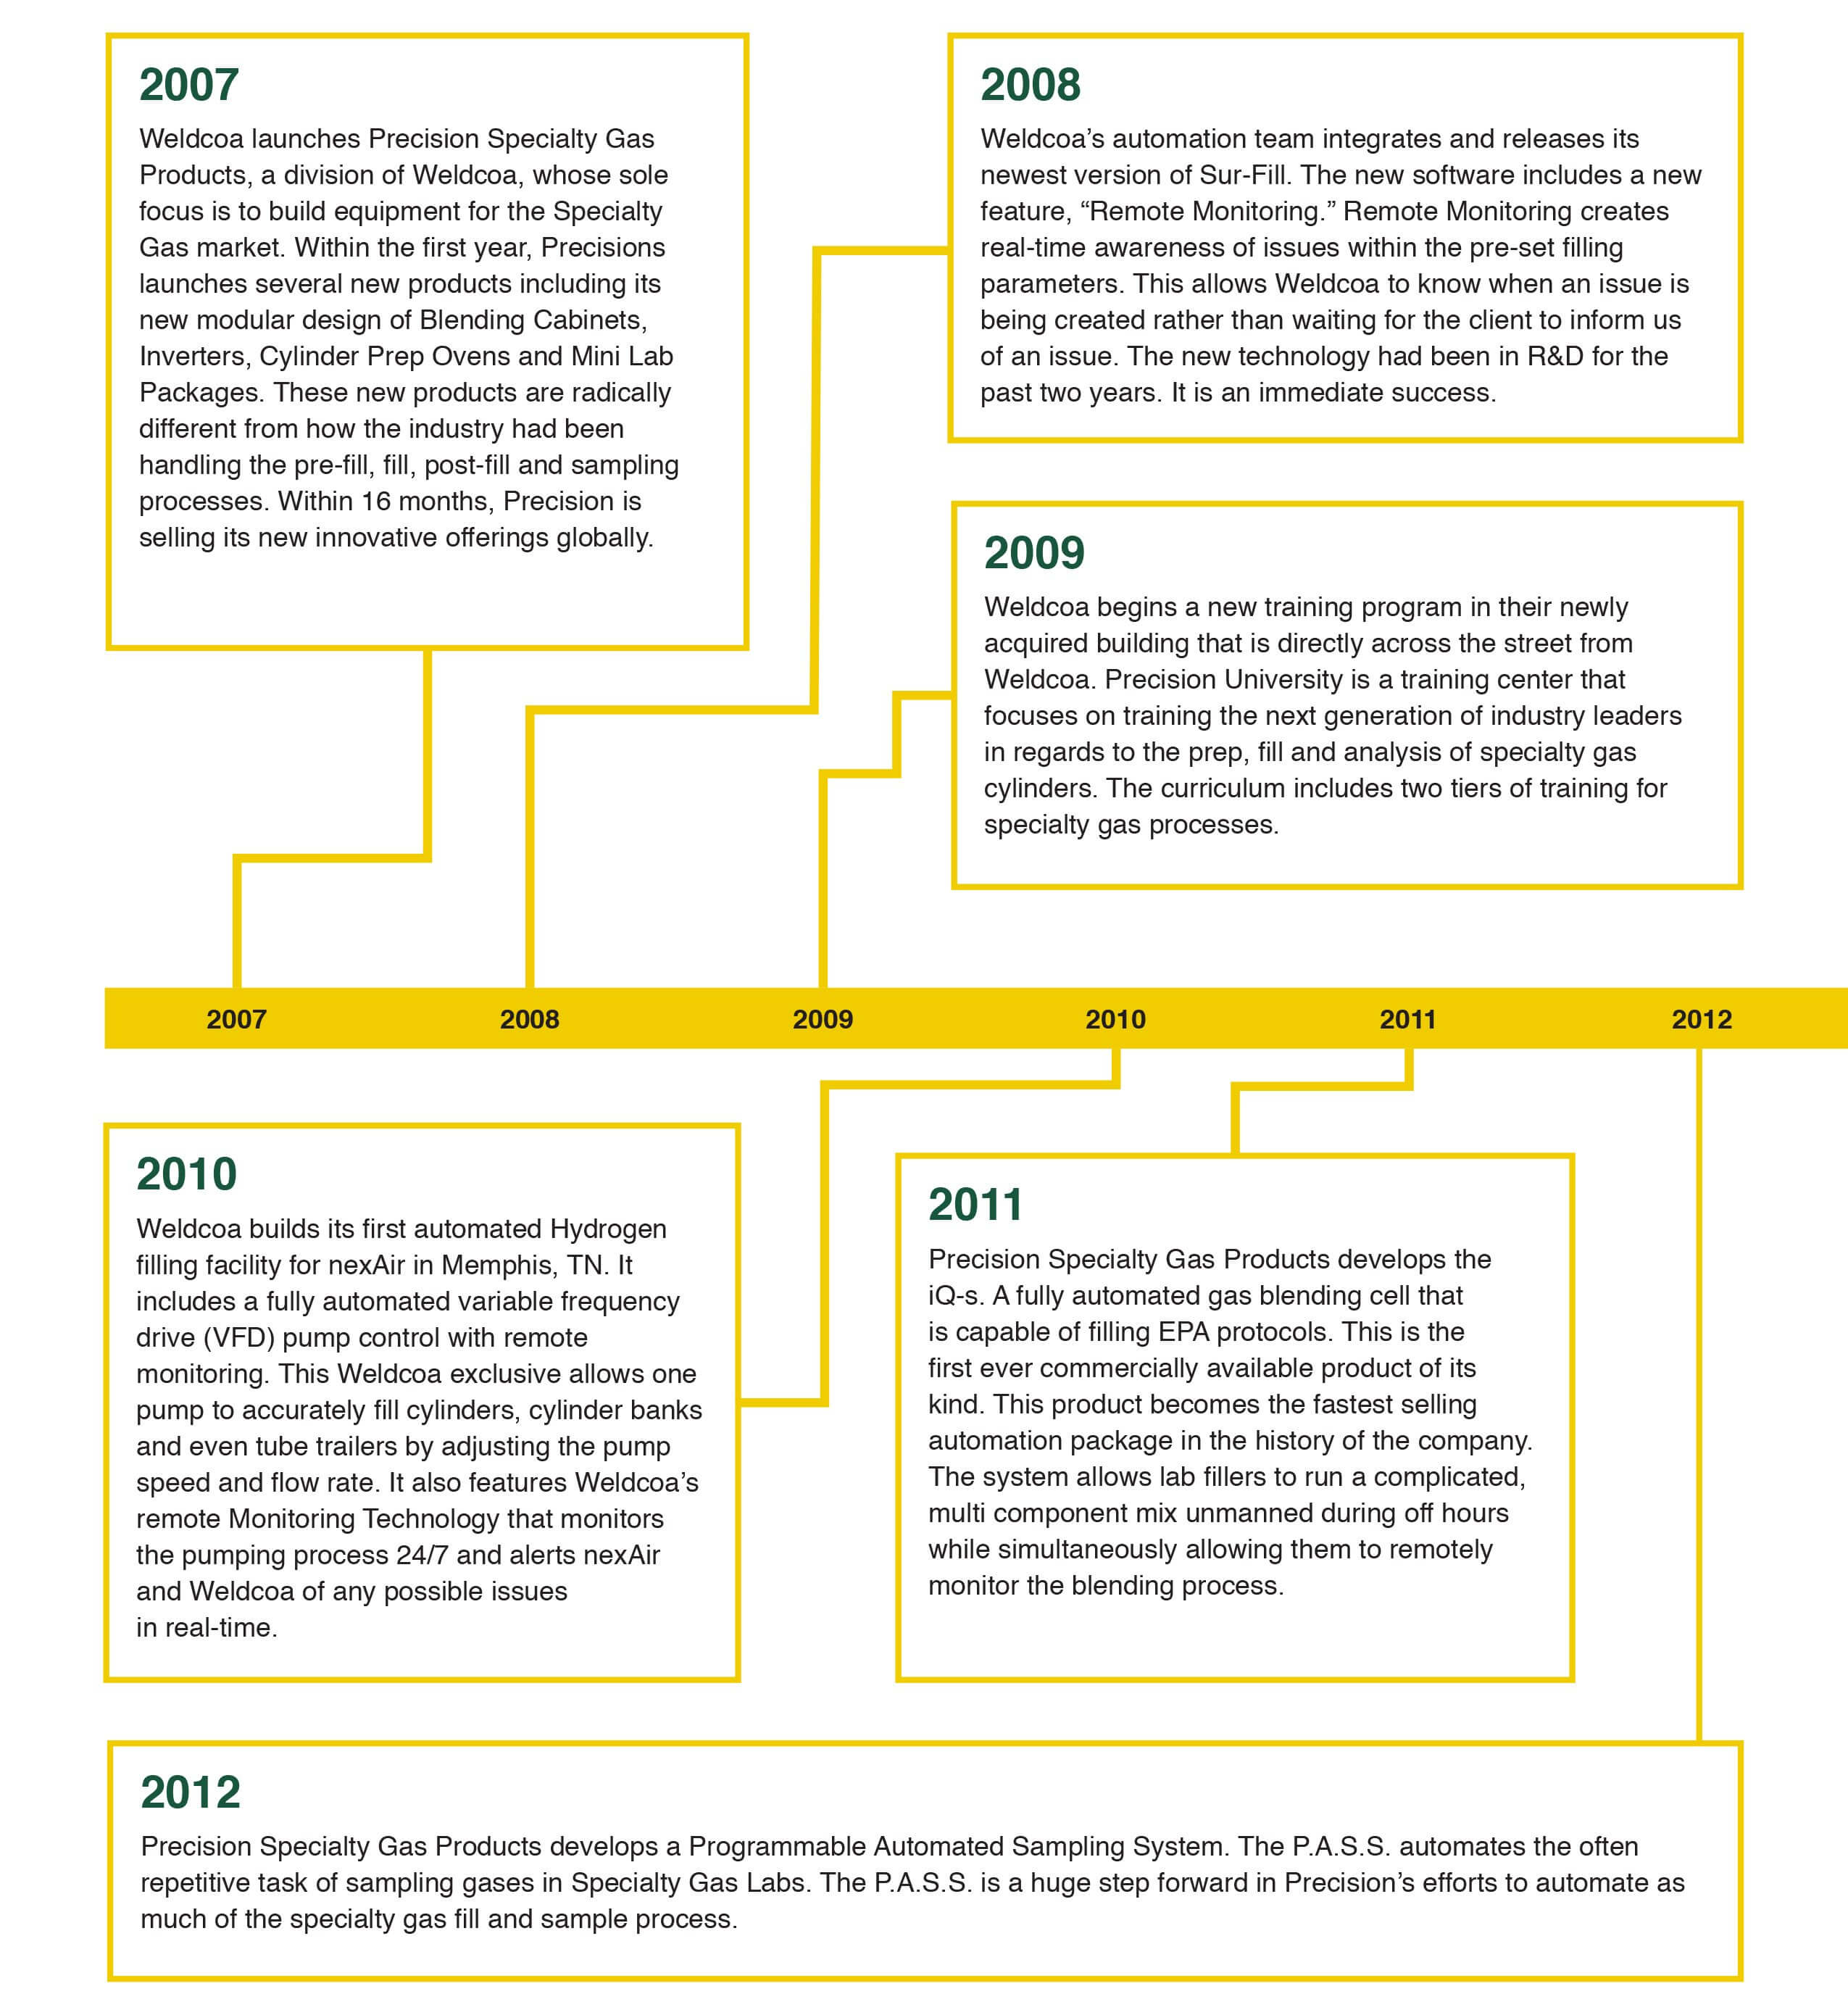 History of Firsts 2007-2012